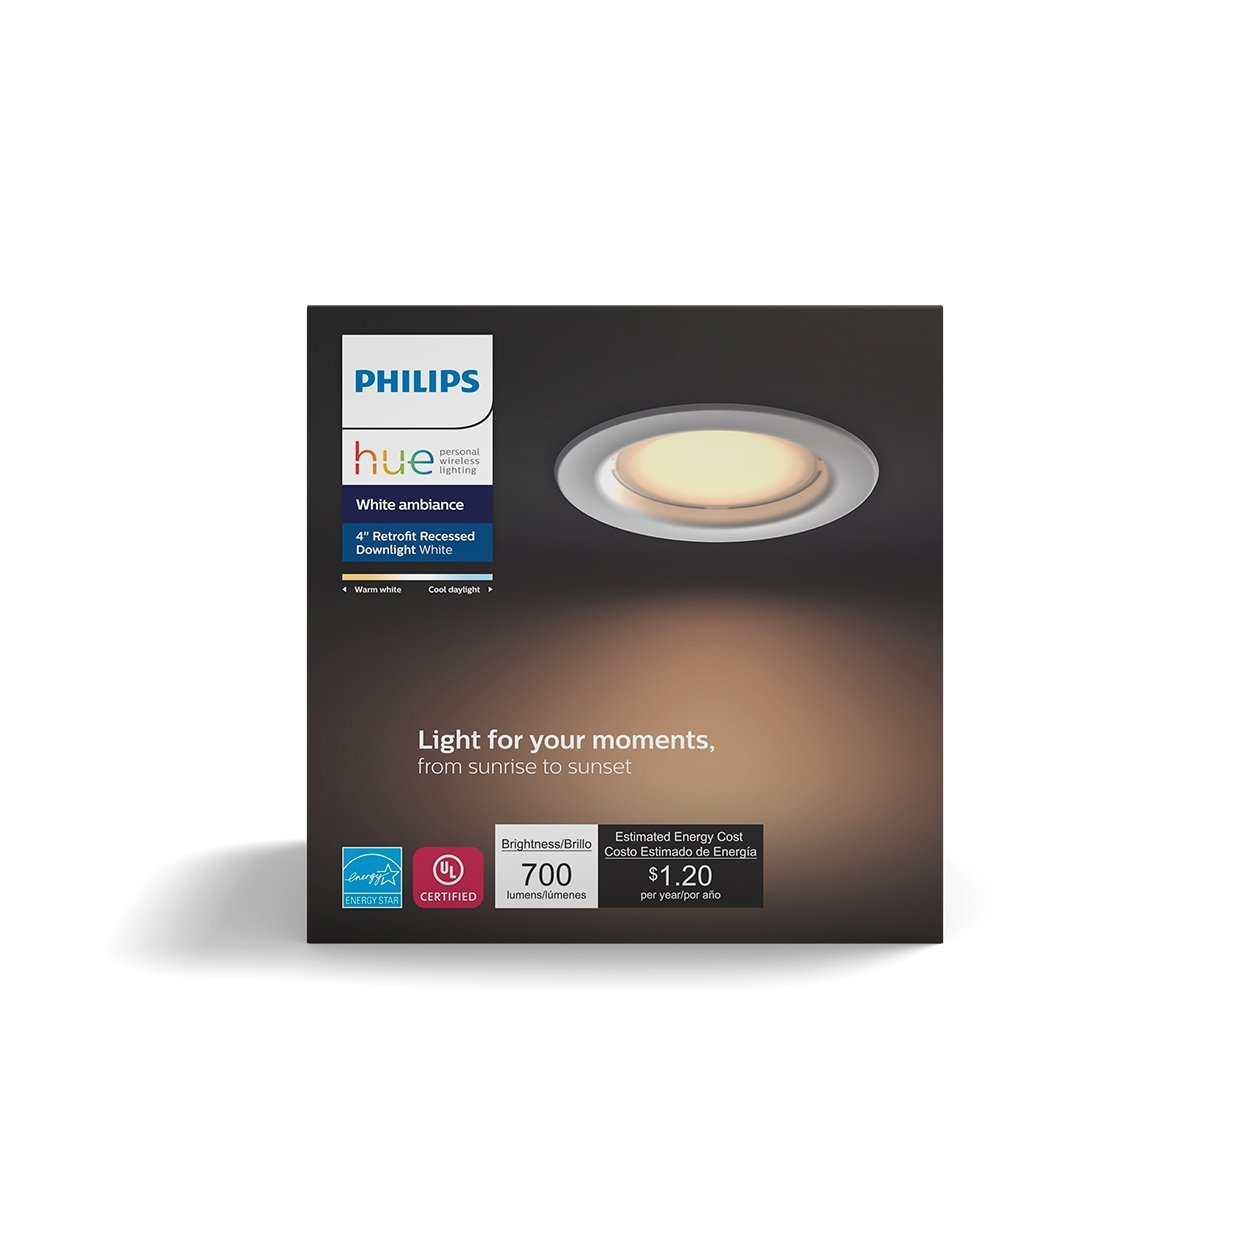 Philips Hue White Ambiance Dimmable LED Smart Retrofit Recessed Downlight (4-InchCompatible with Amazon AlexaApple HomeKitand Google Assistant)